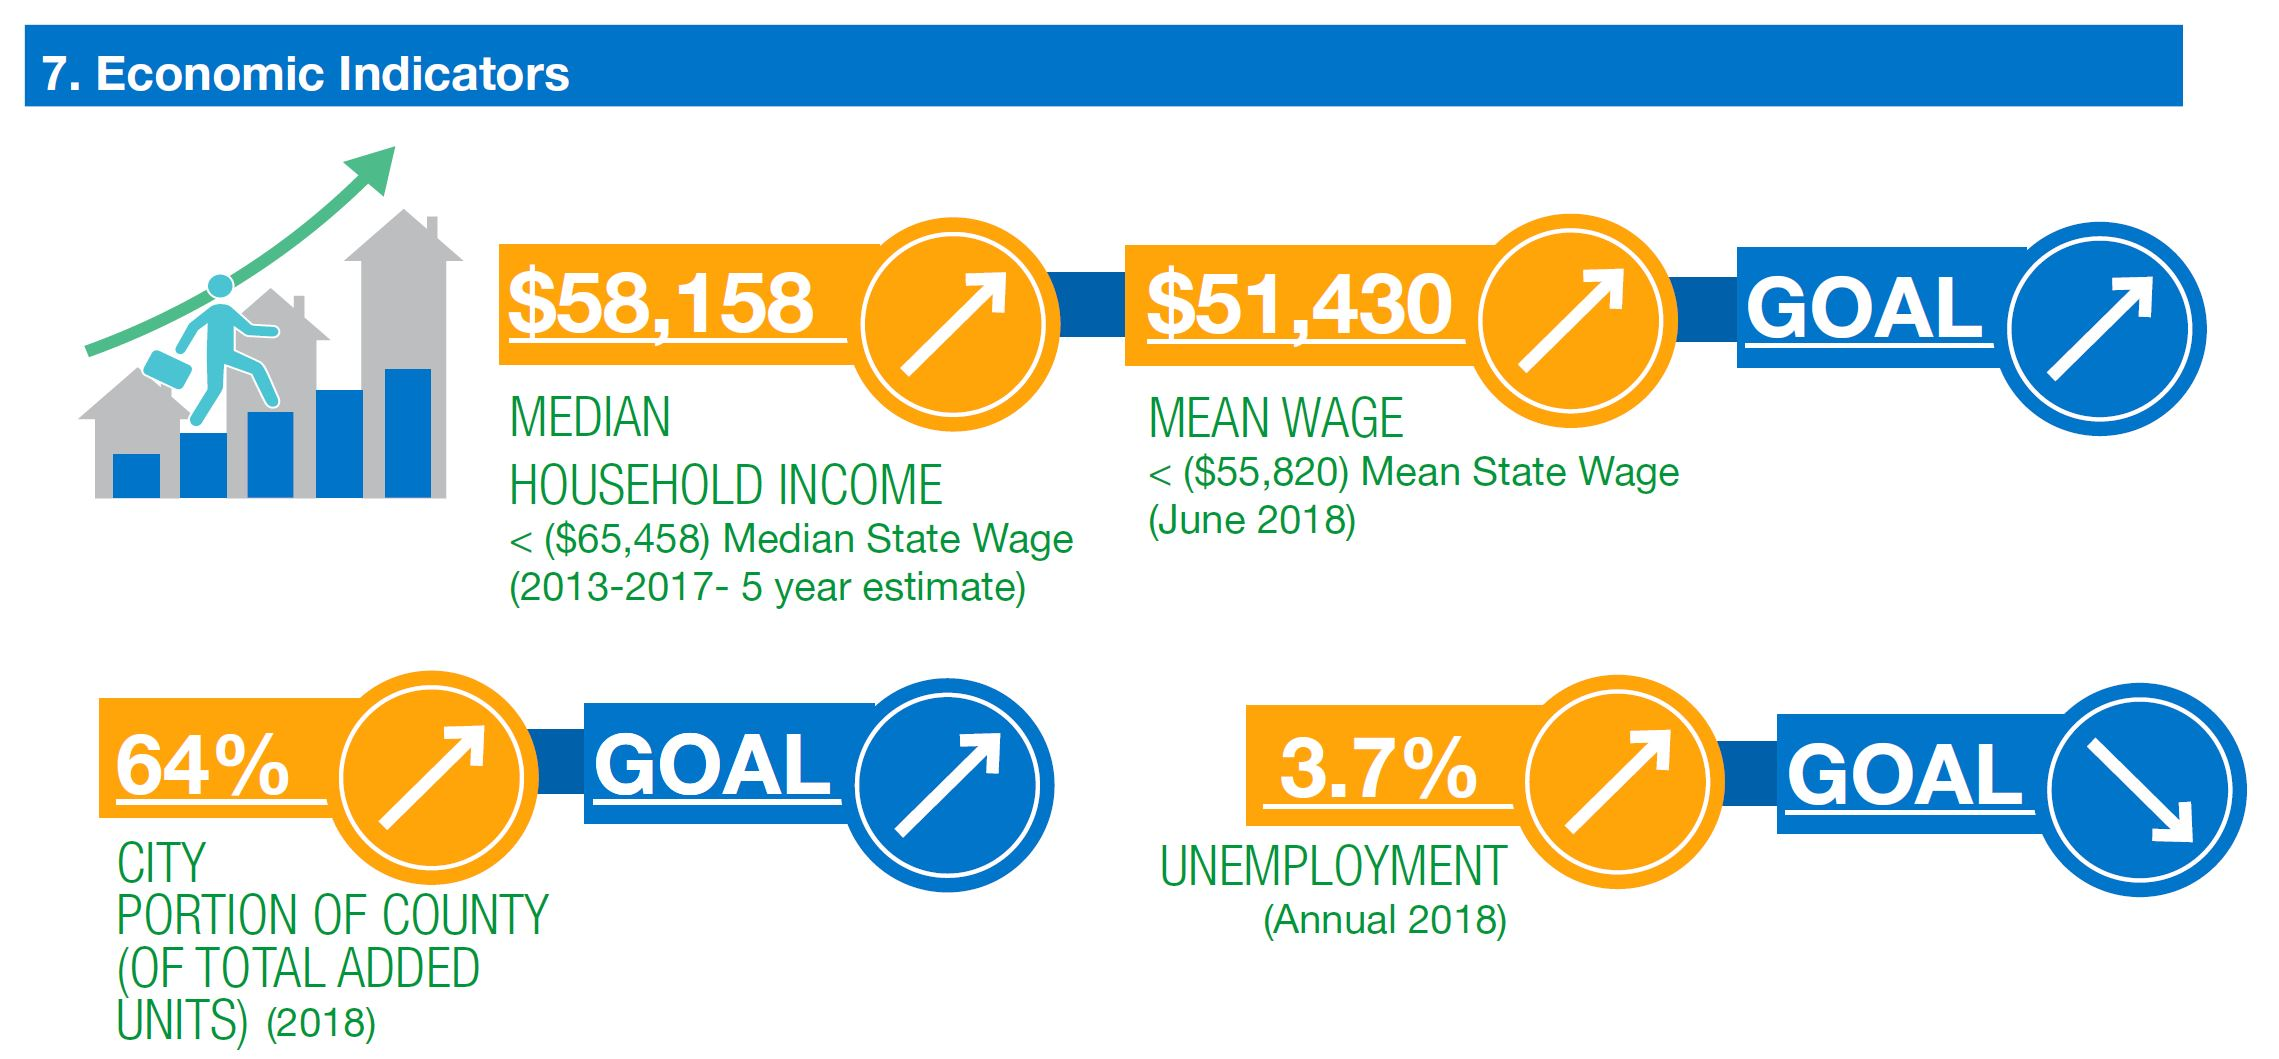 graphic shows media household income rising, mean wage rising (goals rising). city is 64% of county rising (goal rising) unemployment increasing (goal decreasing)